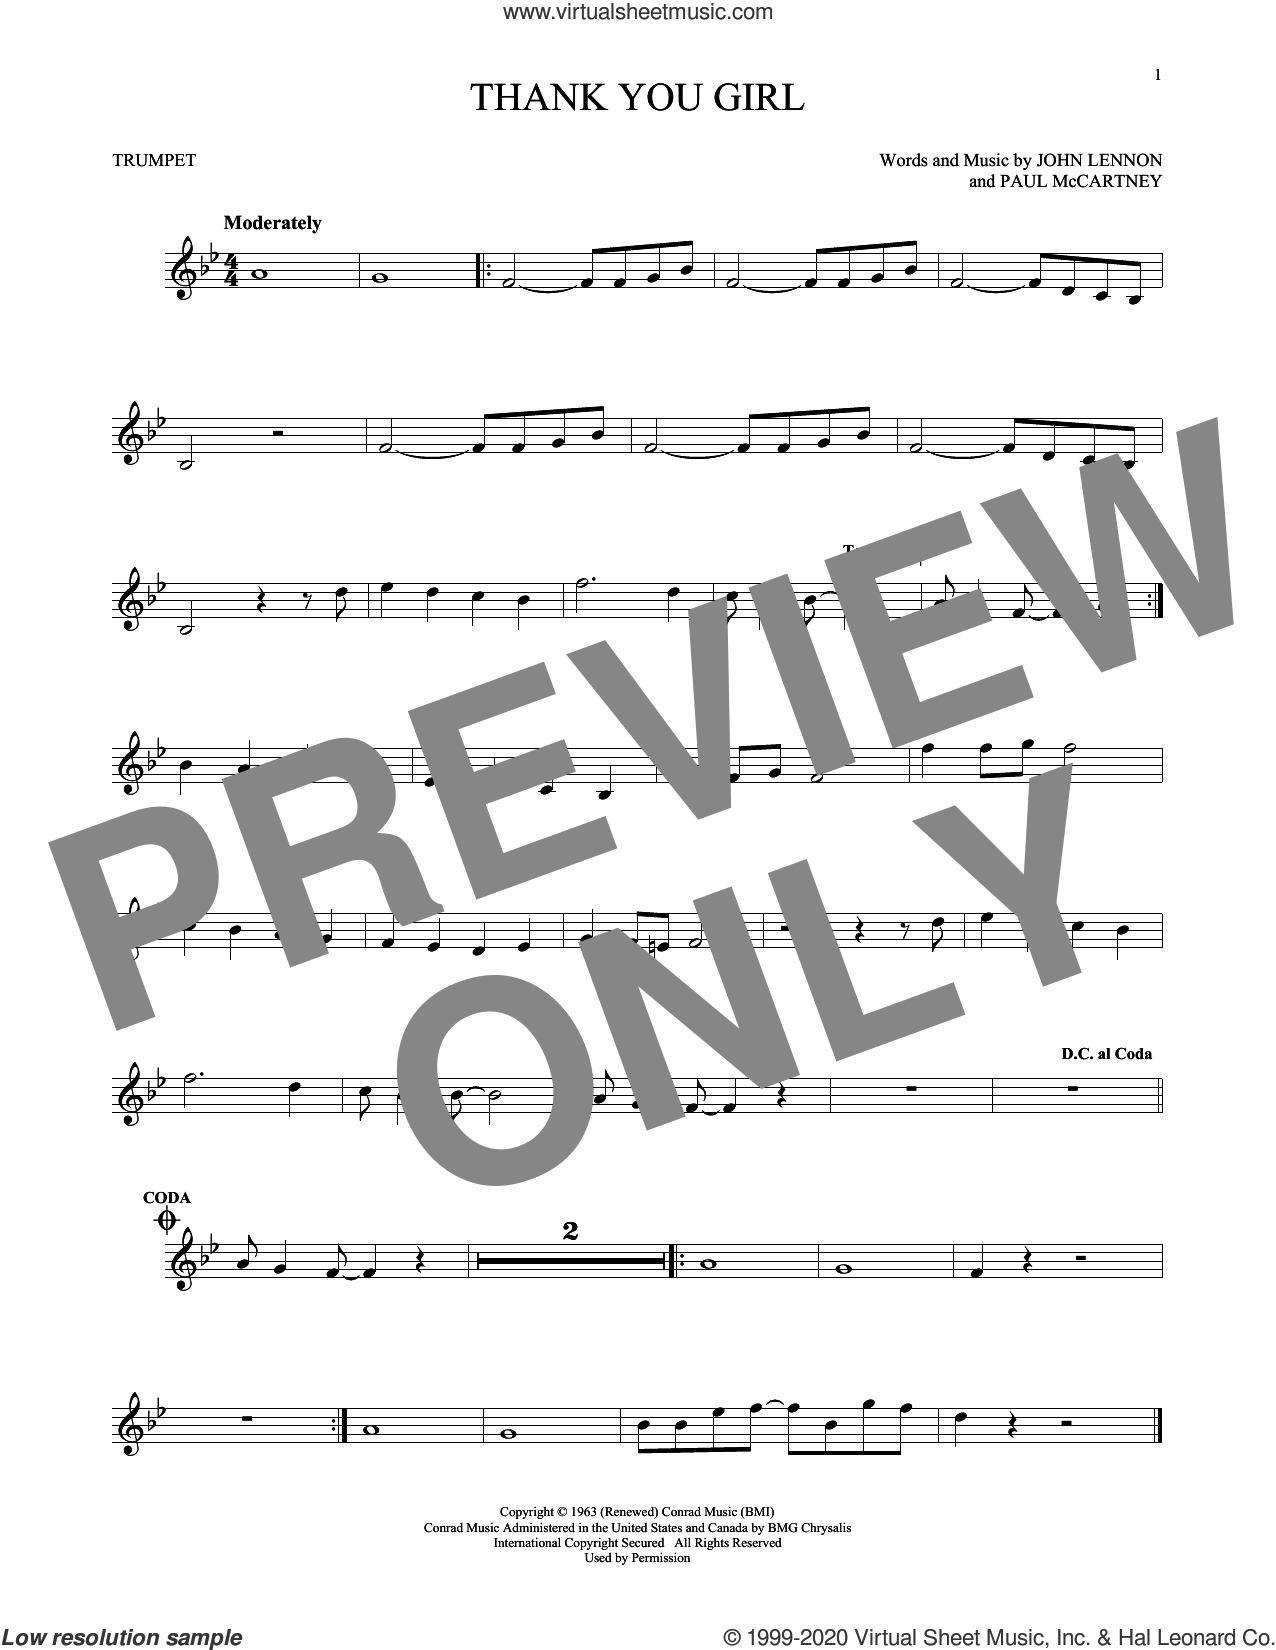 Thank You Girl sheet music for trumpet solo by The Beatles, John Lennon and Paul McCartney, intermediate skill level